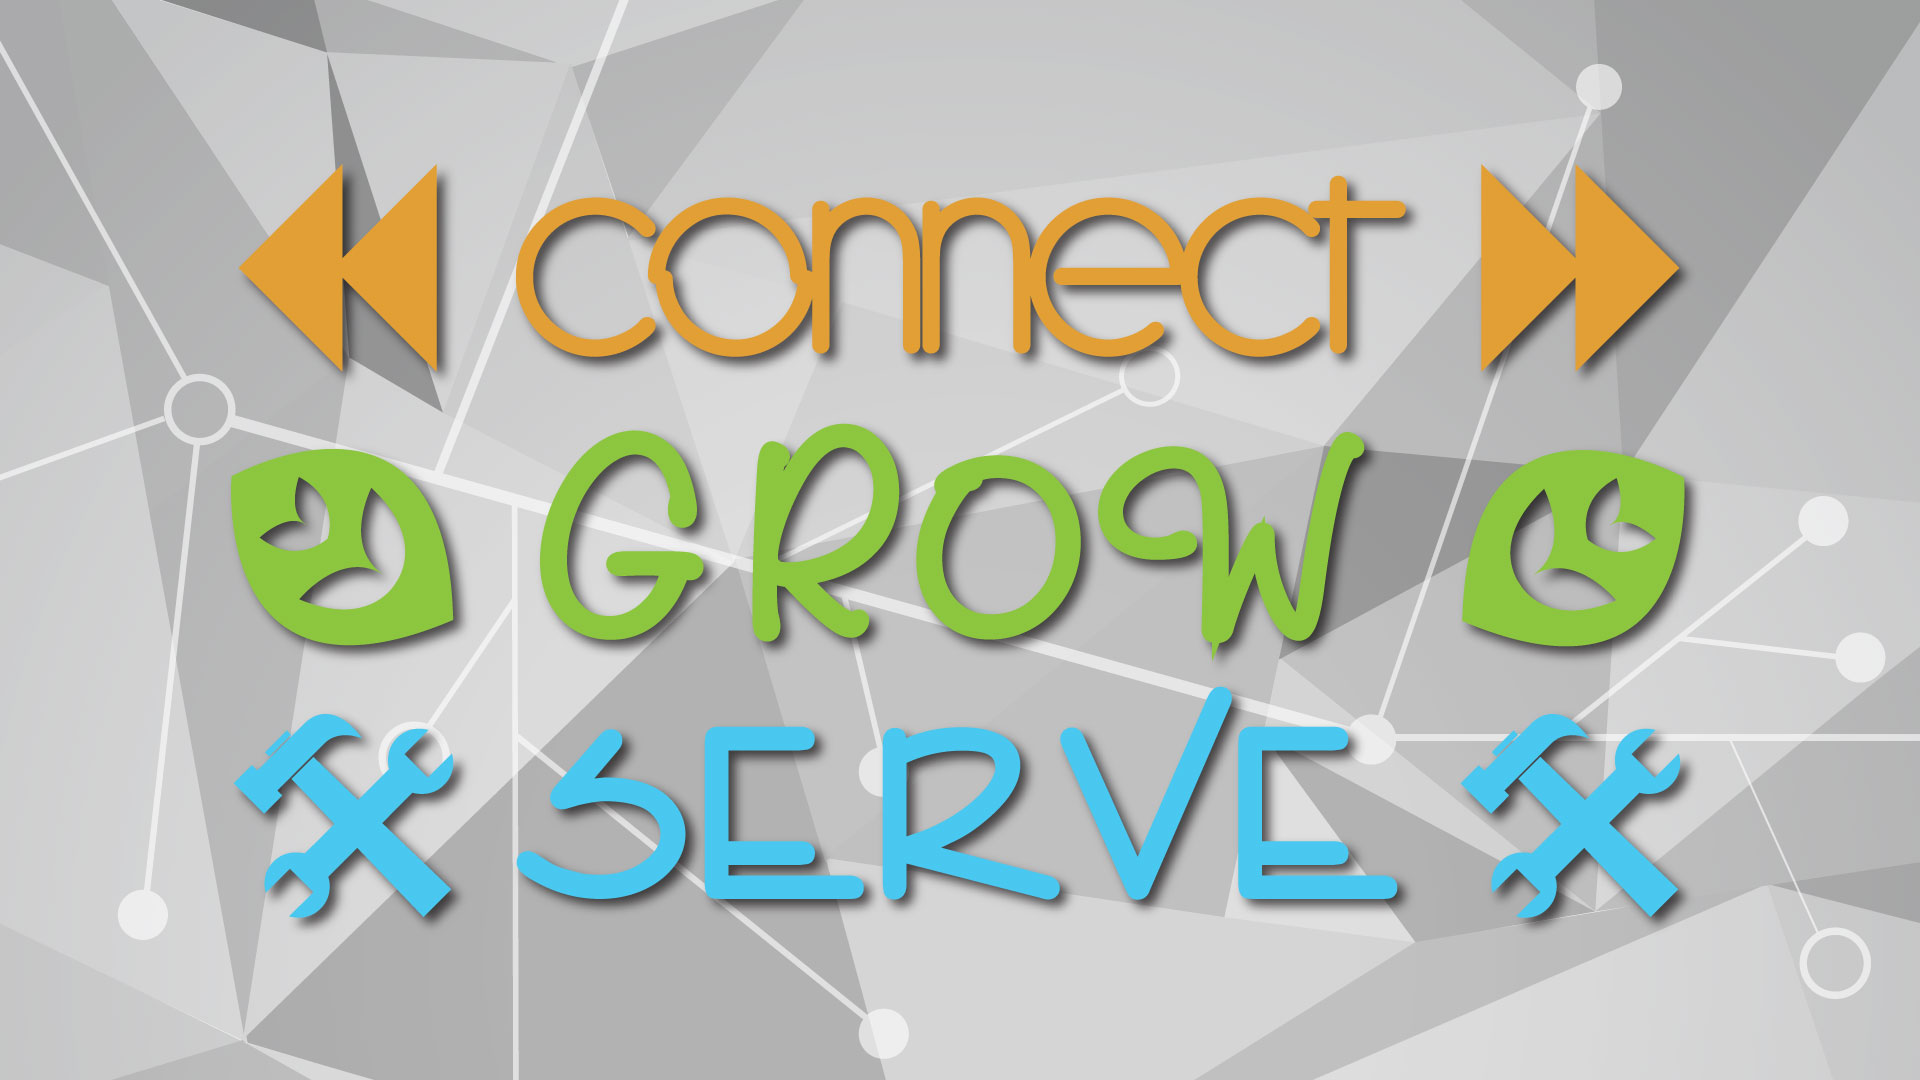 connect-grow-serve-message-graphic.jpg